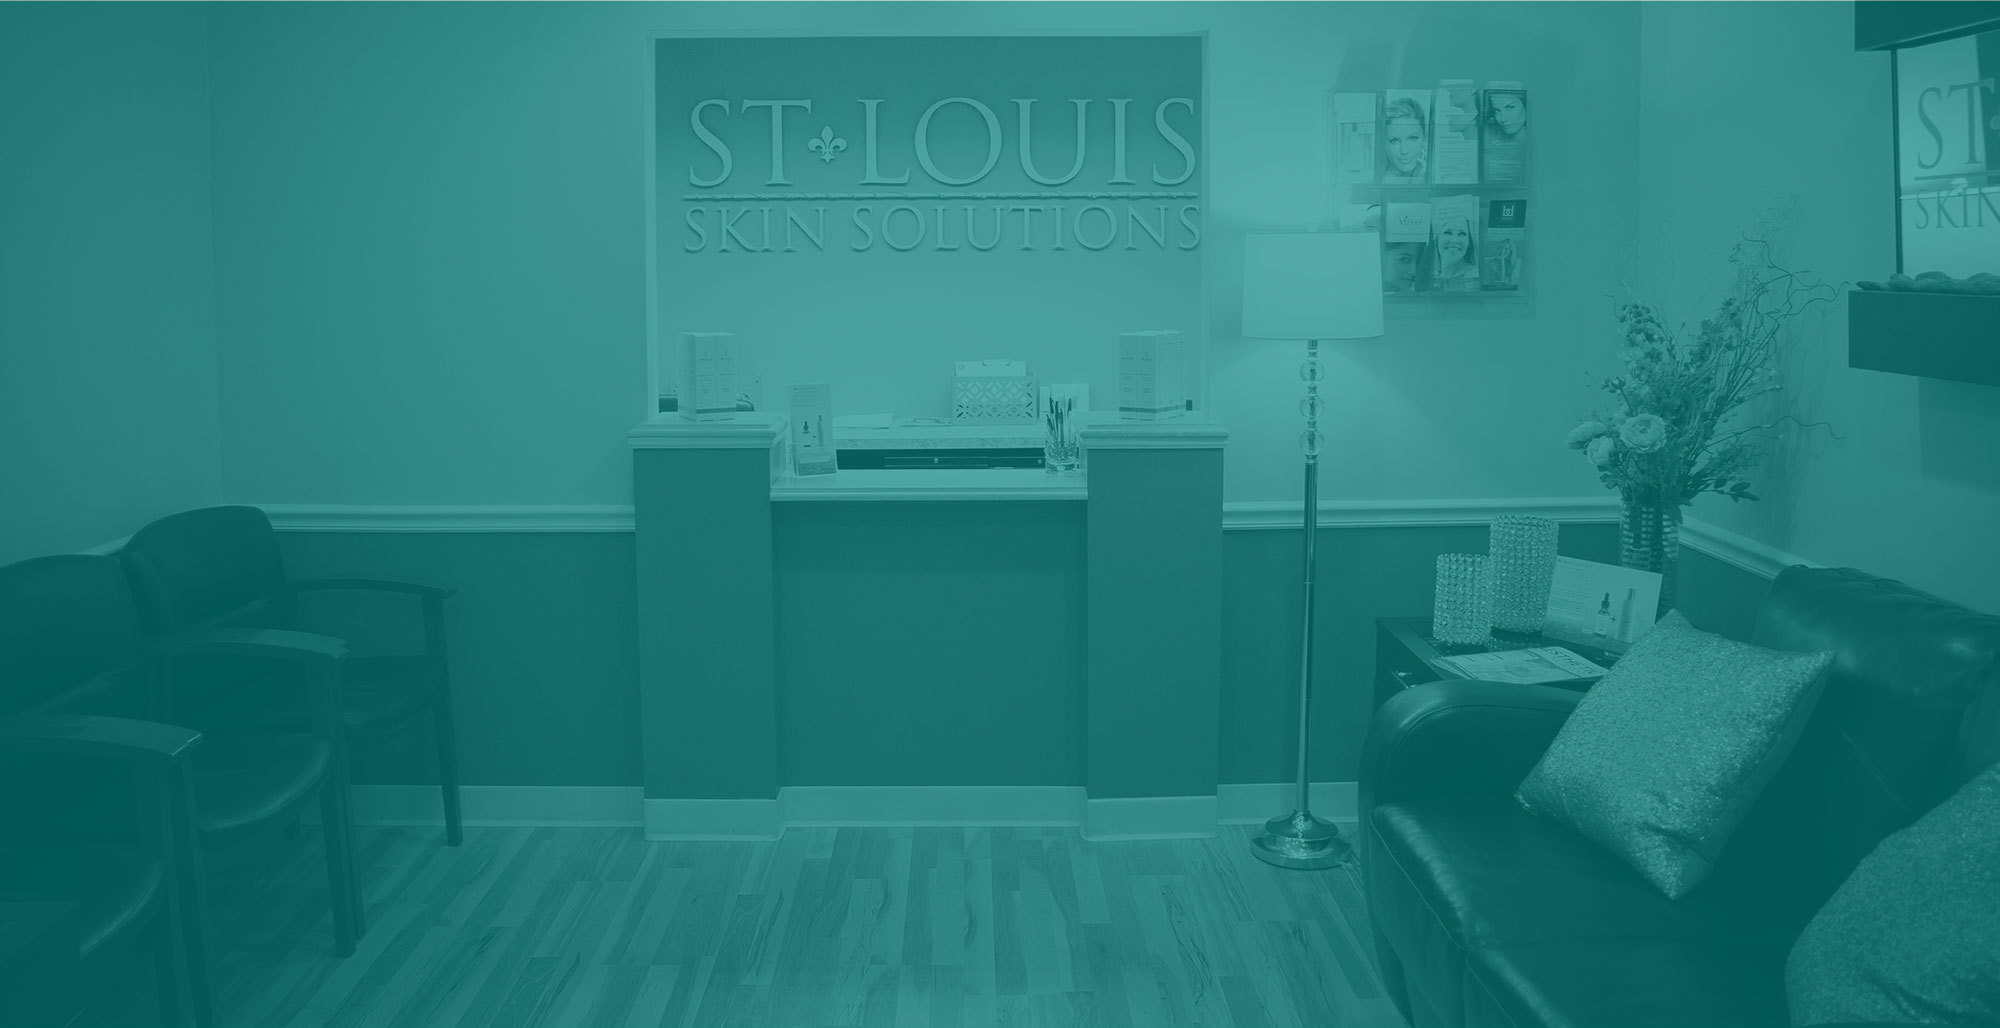 St Louis office space